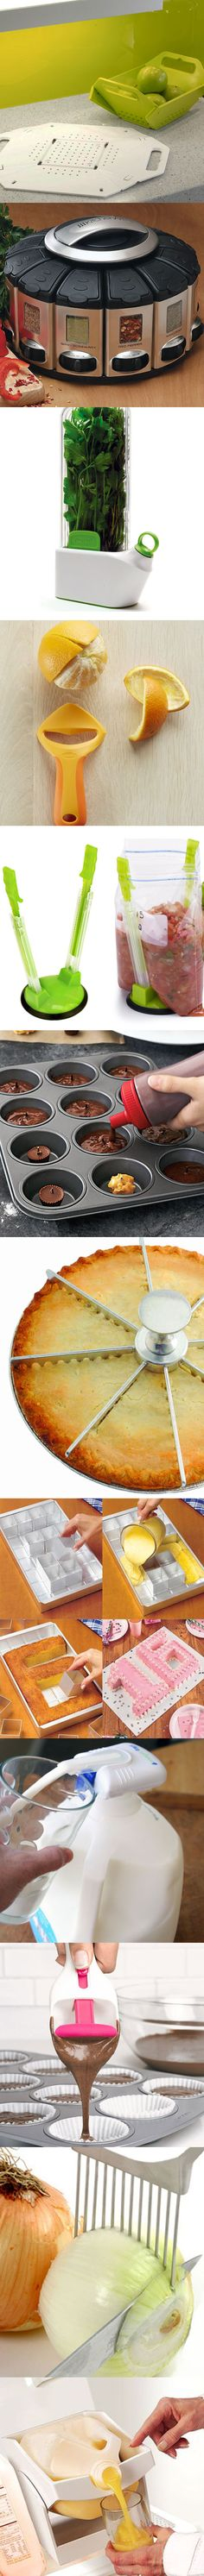 Twelve genius gadgets for in the kitchen. The gadgets on this pin will amaze you. These gadgets will make your life so much easier while in the kitchen. Cool Kitchen Gadgets, Home Gadgets, Cooking Gadgets, Gadgets And Gizmos, Geek Gadgets, Kitchen Hacks, Kitchen Tools, Cool Kitchens, Kitchen Appliances